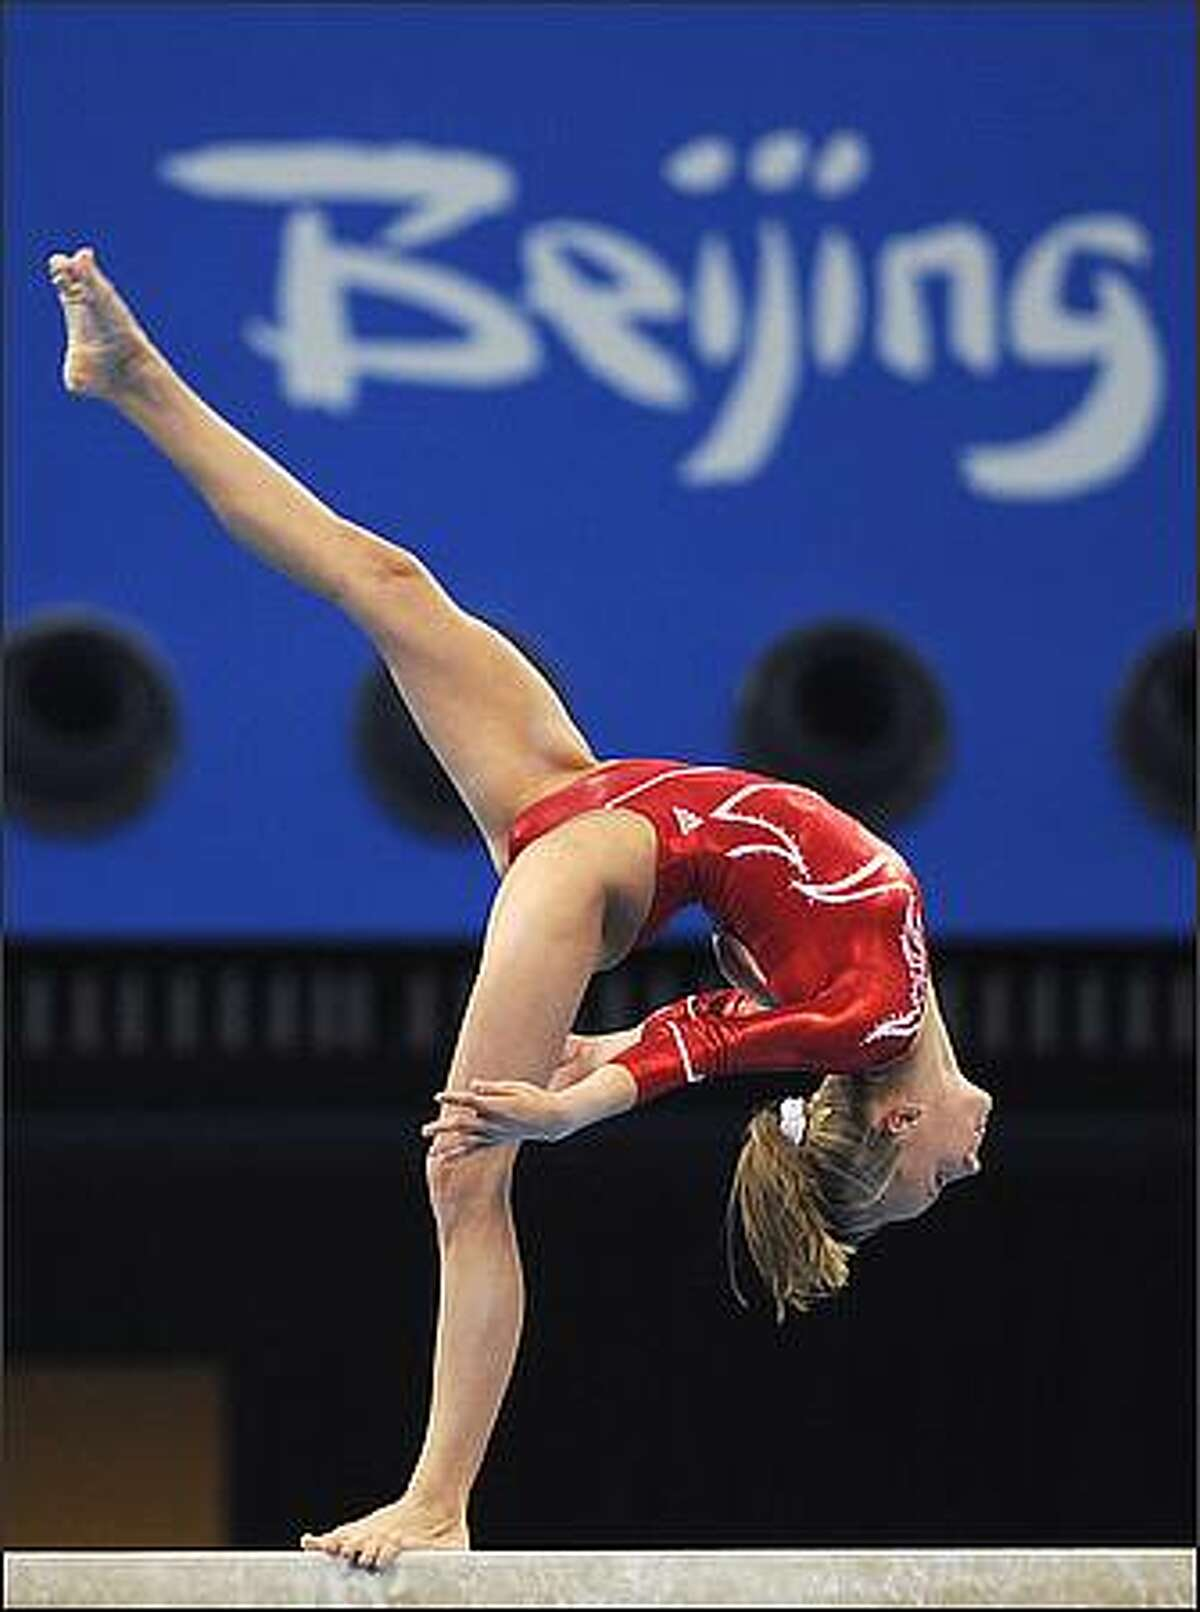 United States' Nastia Liukin competes on the balance beam during the women's team final of the artistic gymnastics event of the Beijing 2008 Olympic Games in Beijing. China won the gold, while United States won the silver and Romania the bronze. (Photo FRANCK FIFE/AFP/Getty Images)